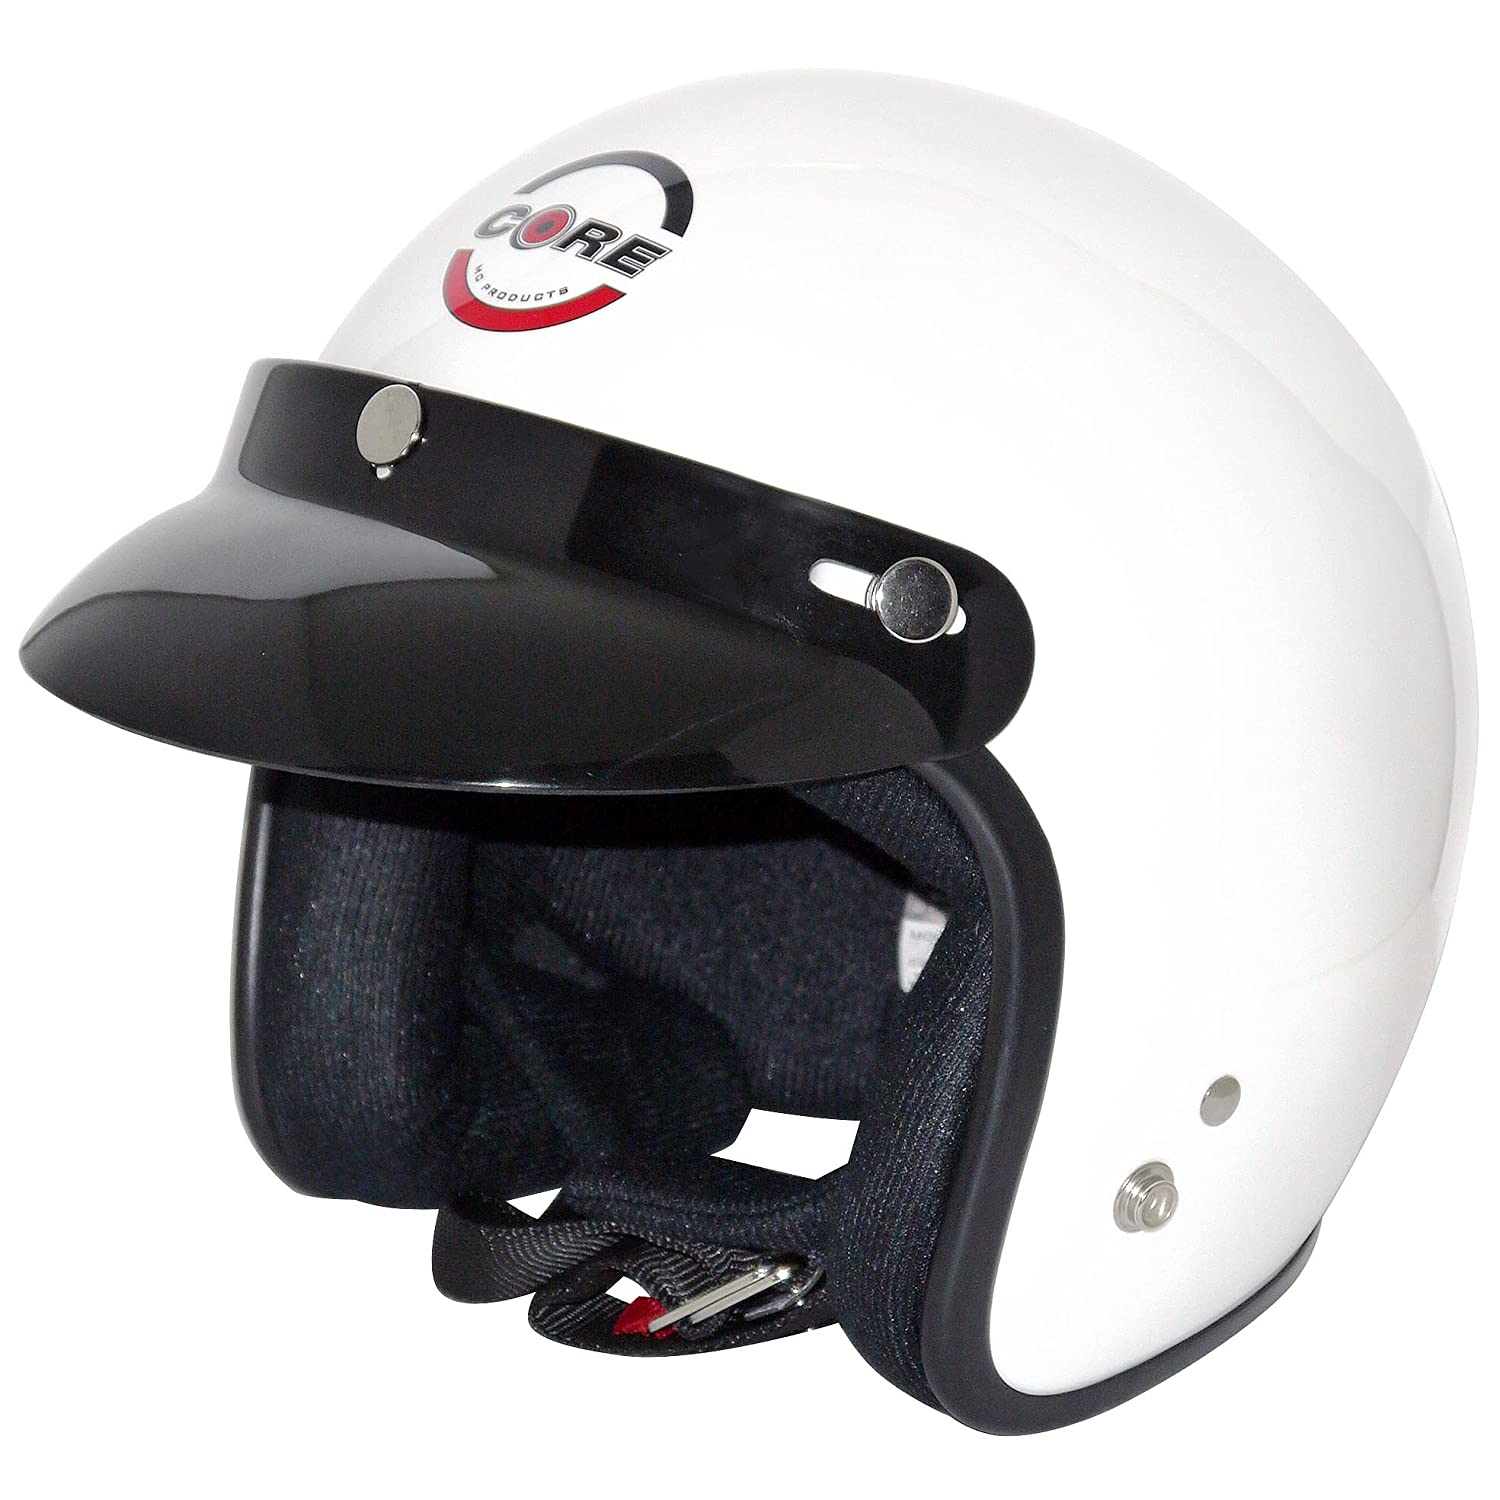 Best motorcycle helmet for glasses wearers what you want for Best helmet for motor scooter